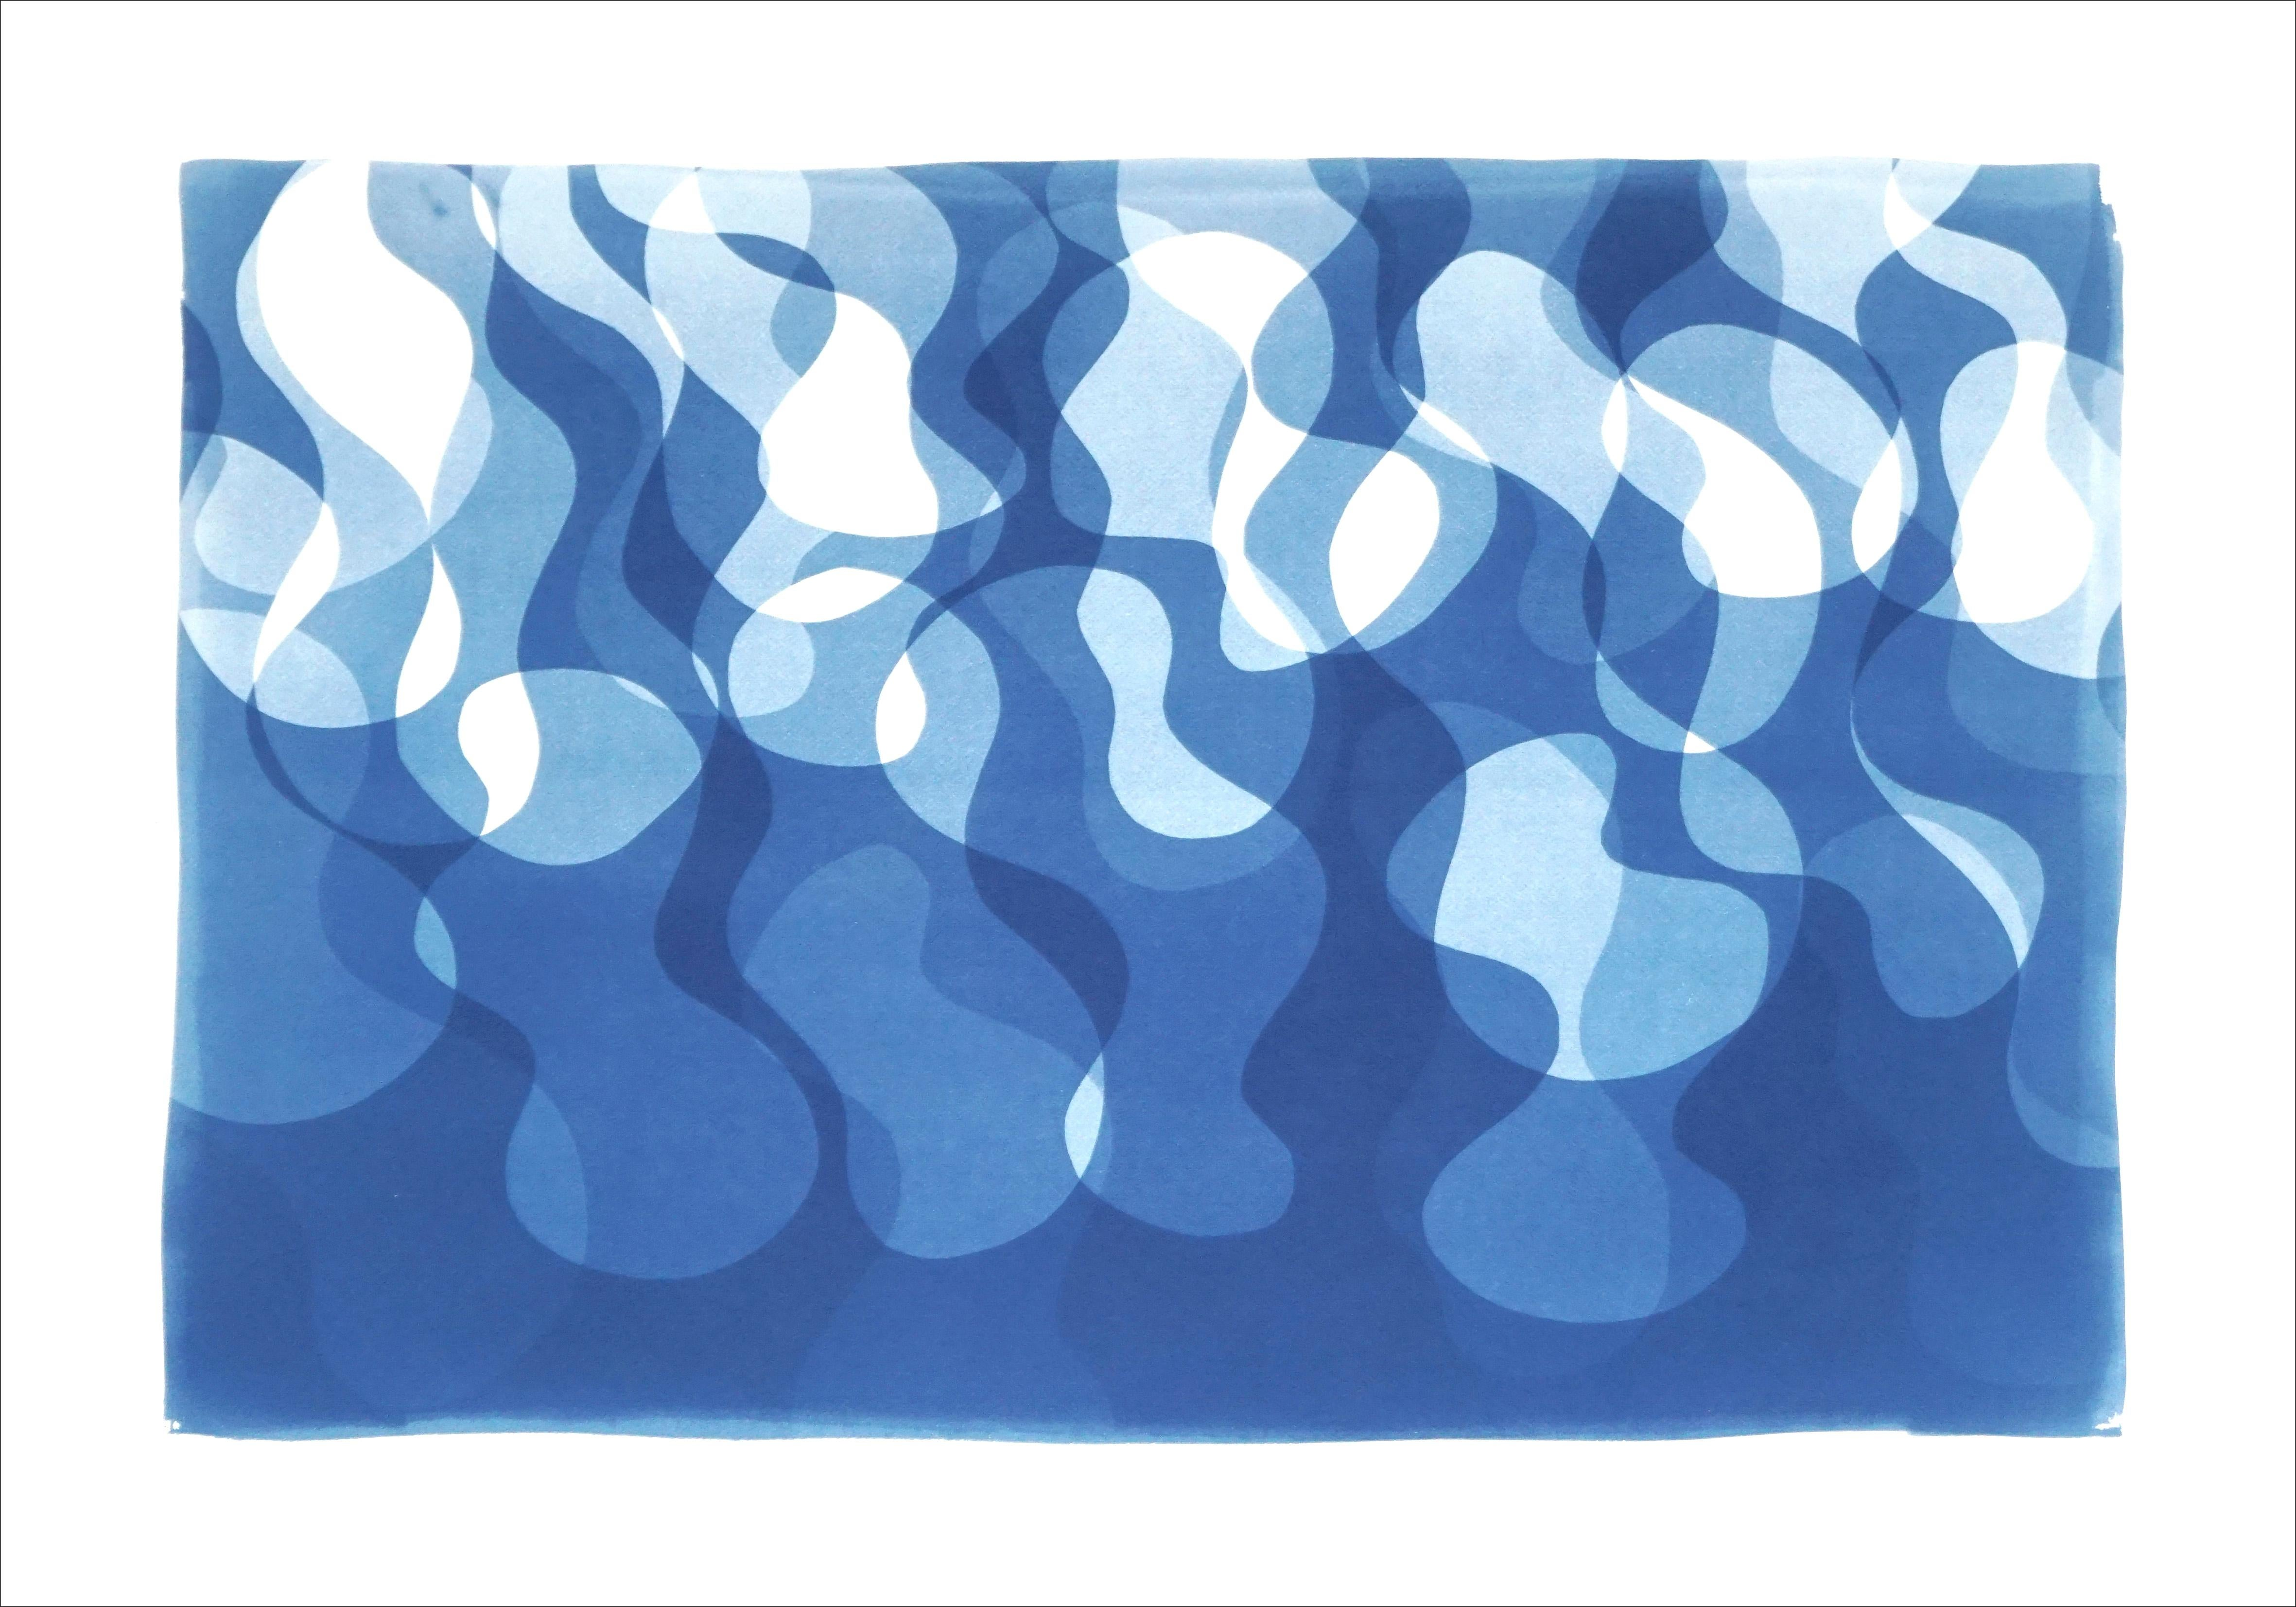 Curvy Water Flow, Abstract Shapes in Blue Tones, Pool Style Art, Cyanotype Print